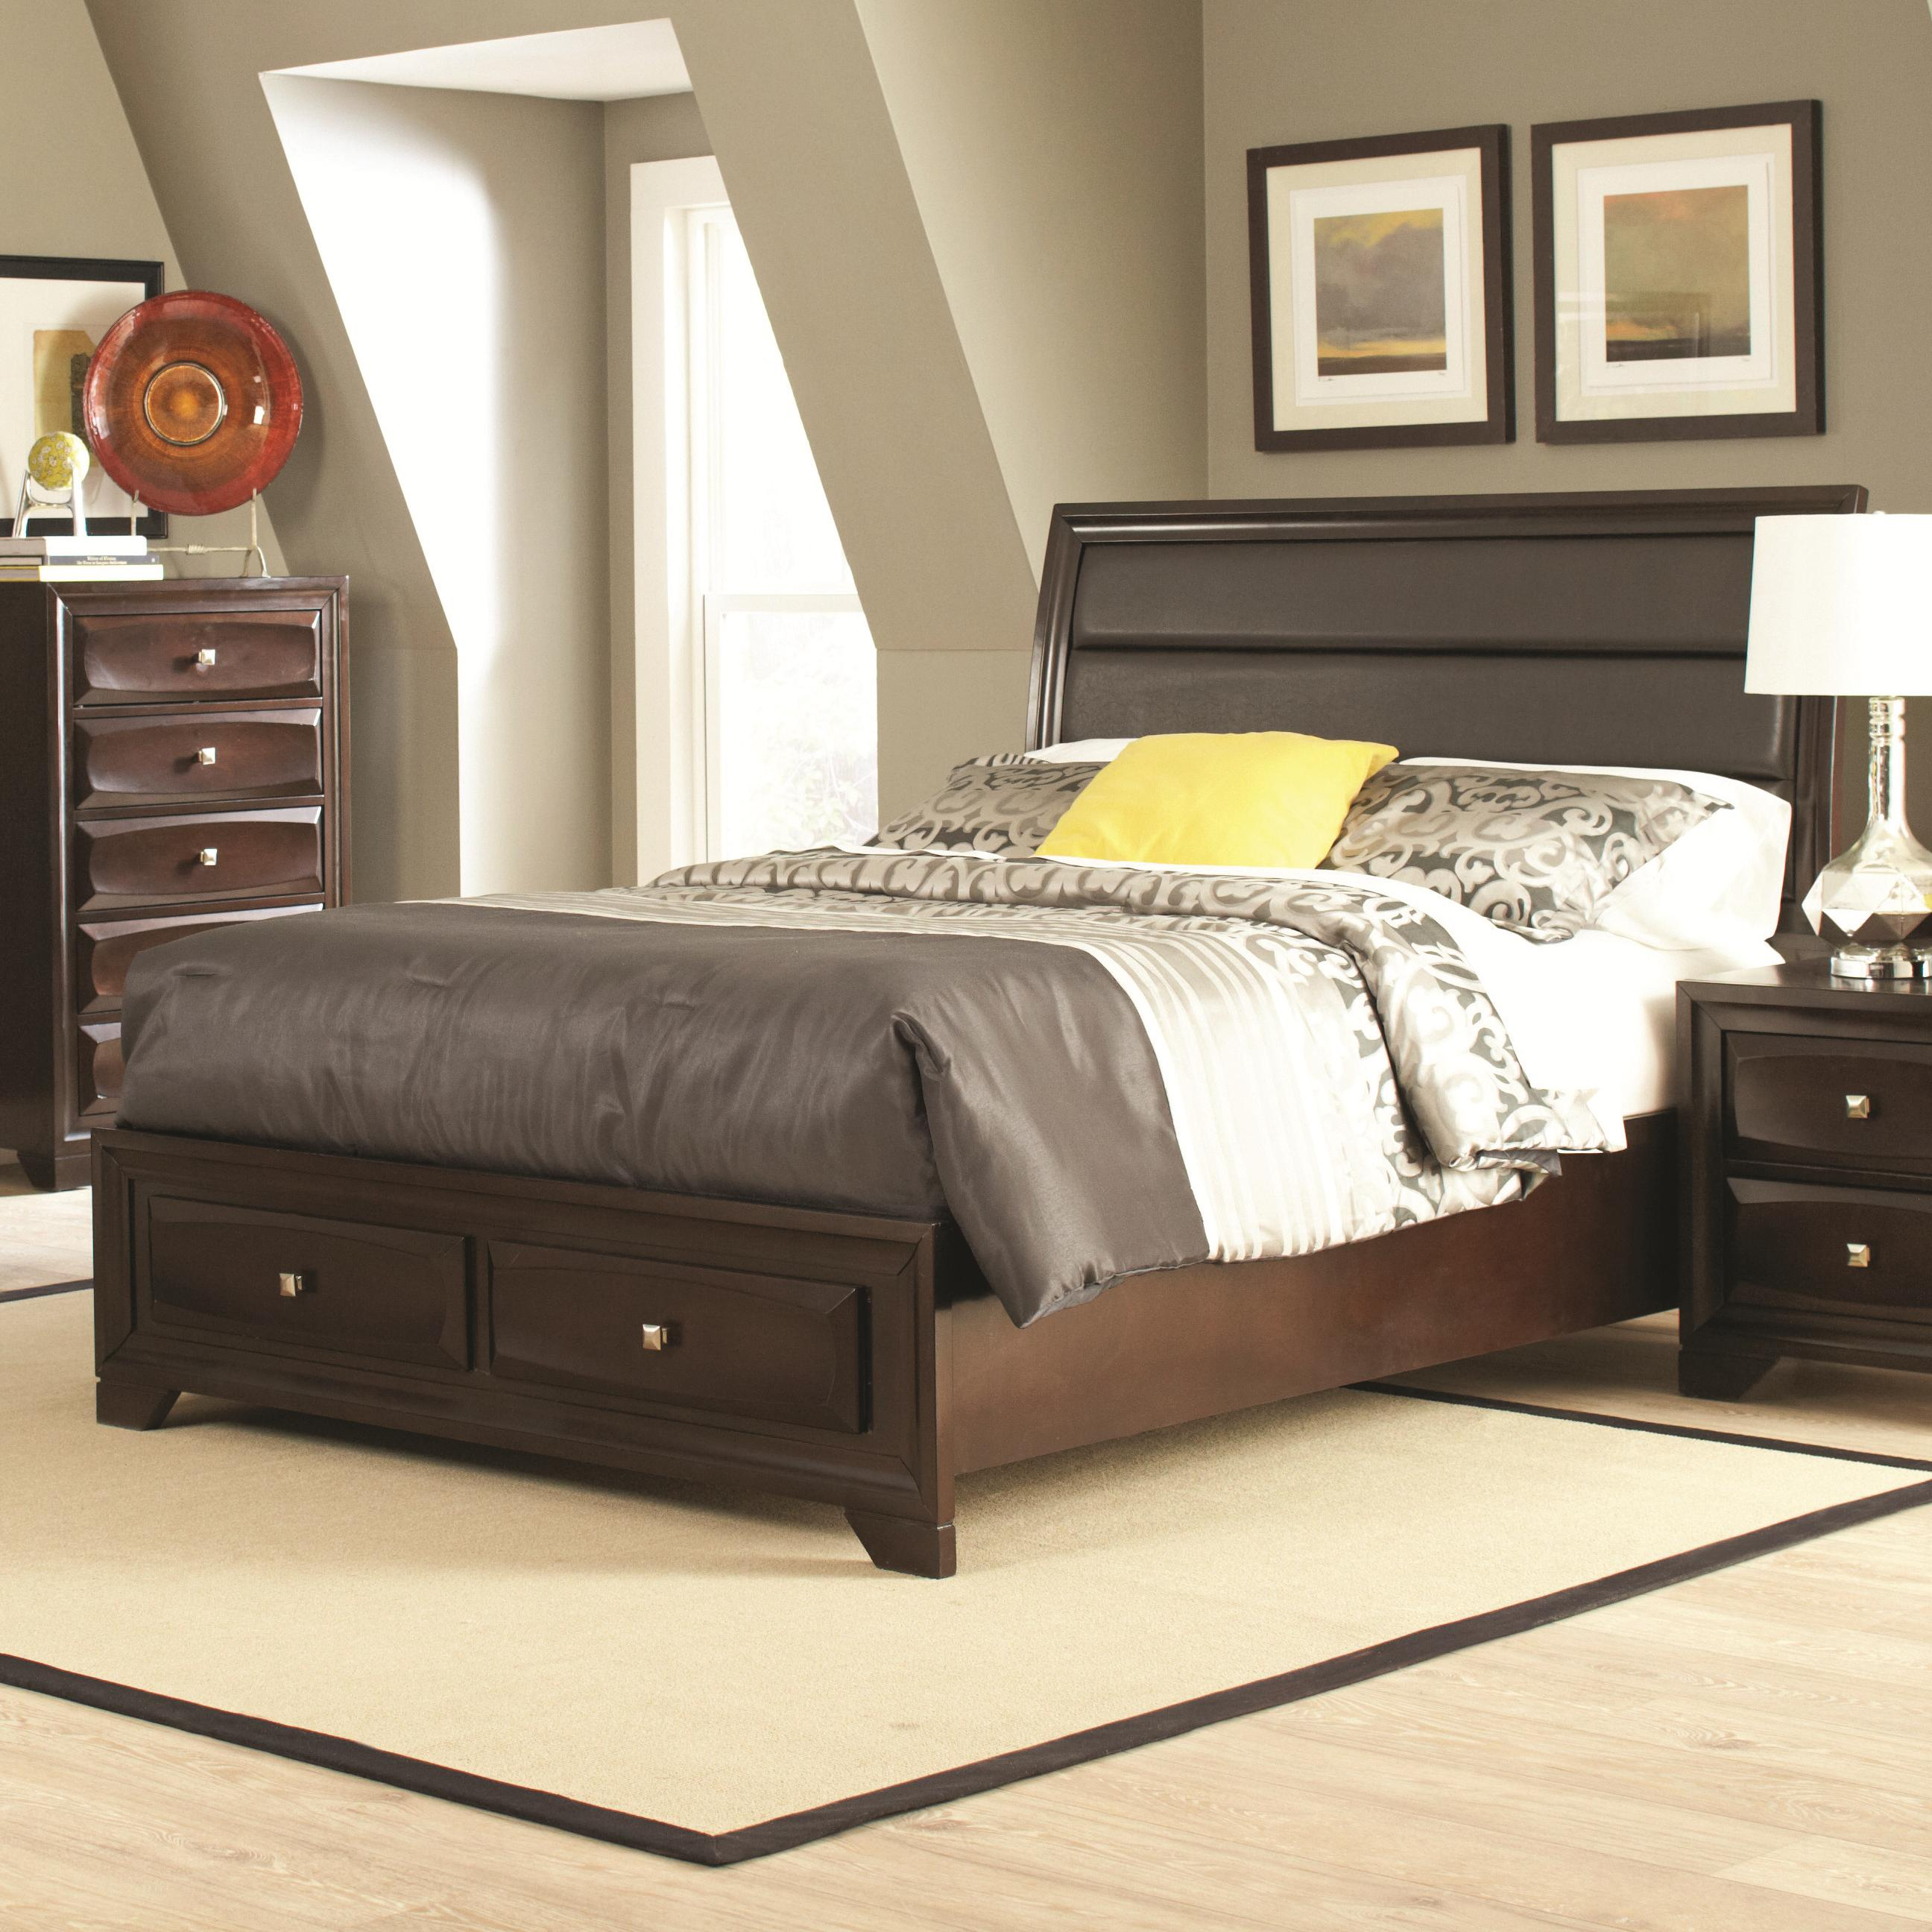 Queen 4 pc set, jaxson (bed, dresser, nightstand, mirror)